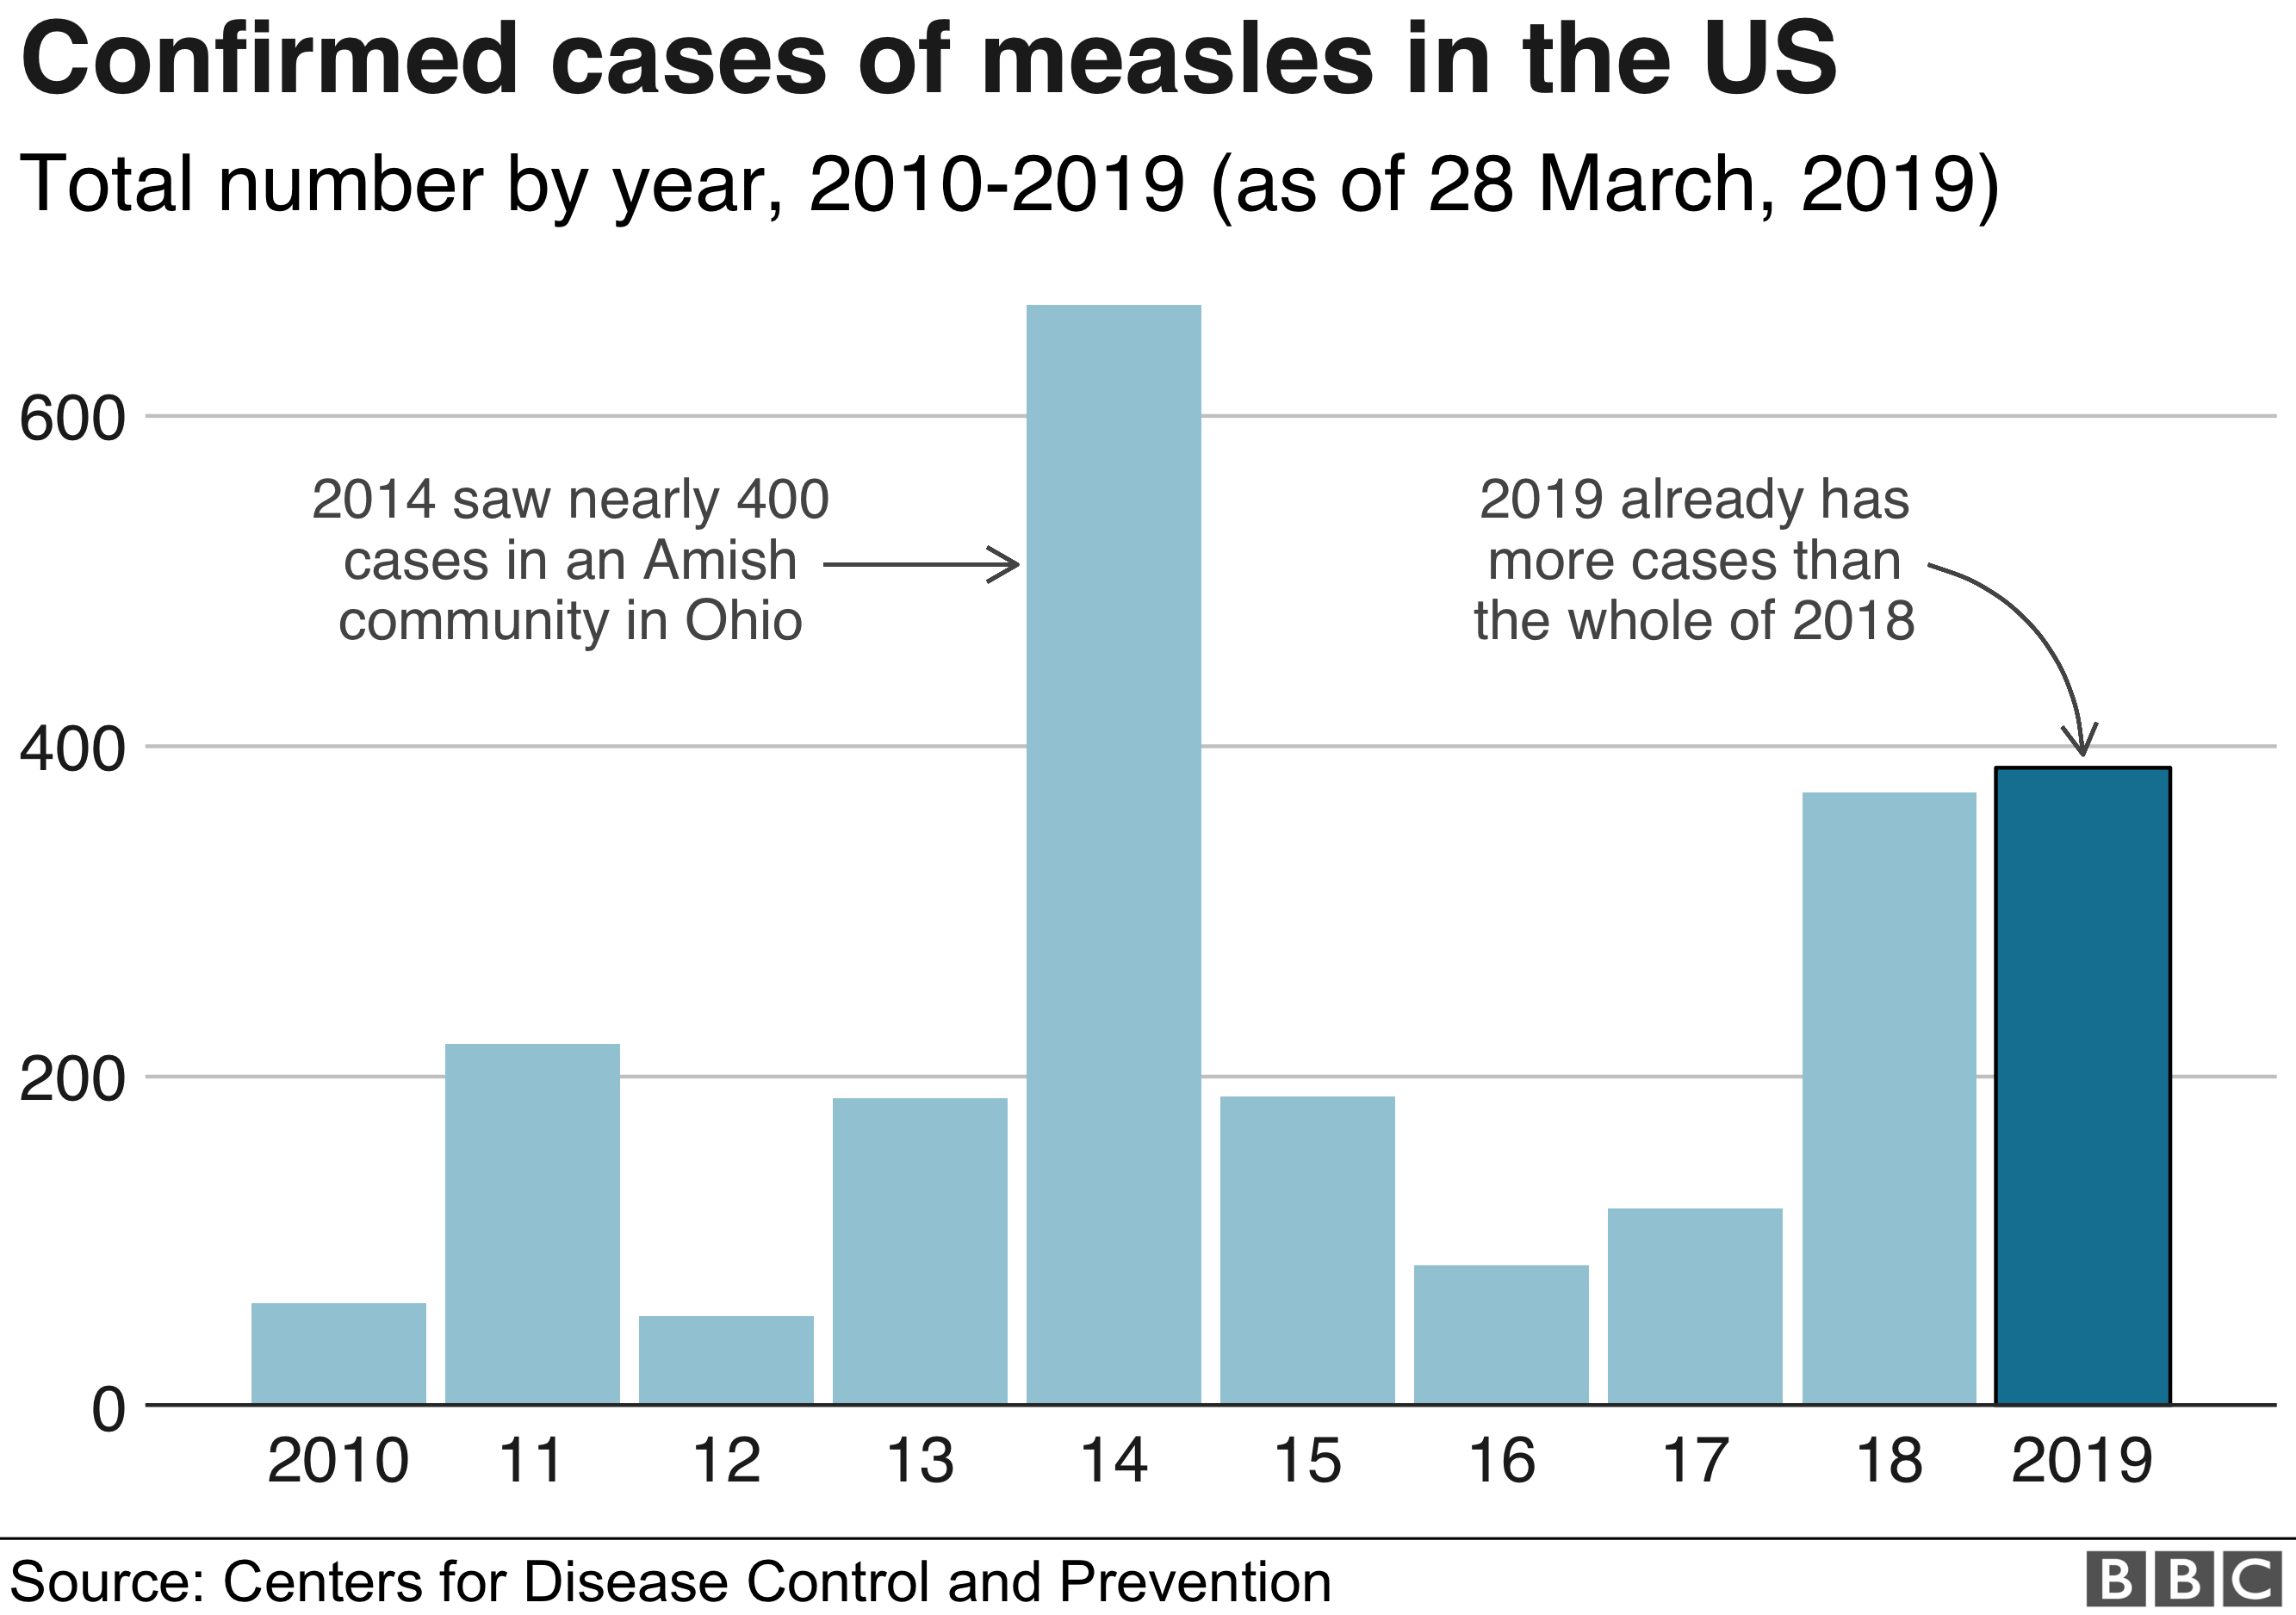 Chart showing confirmed cases of measles in the US, 2010-2019